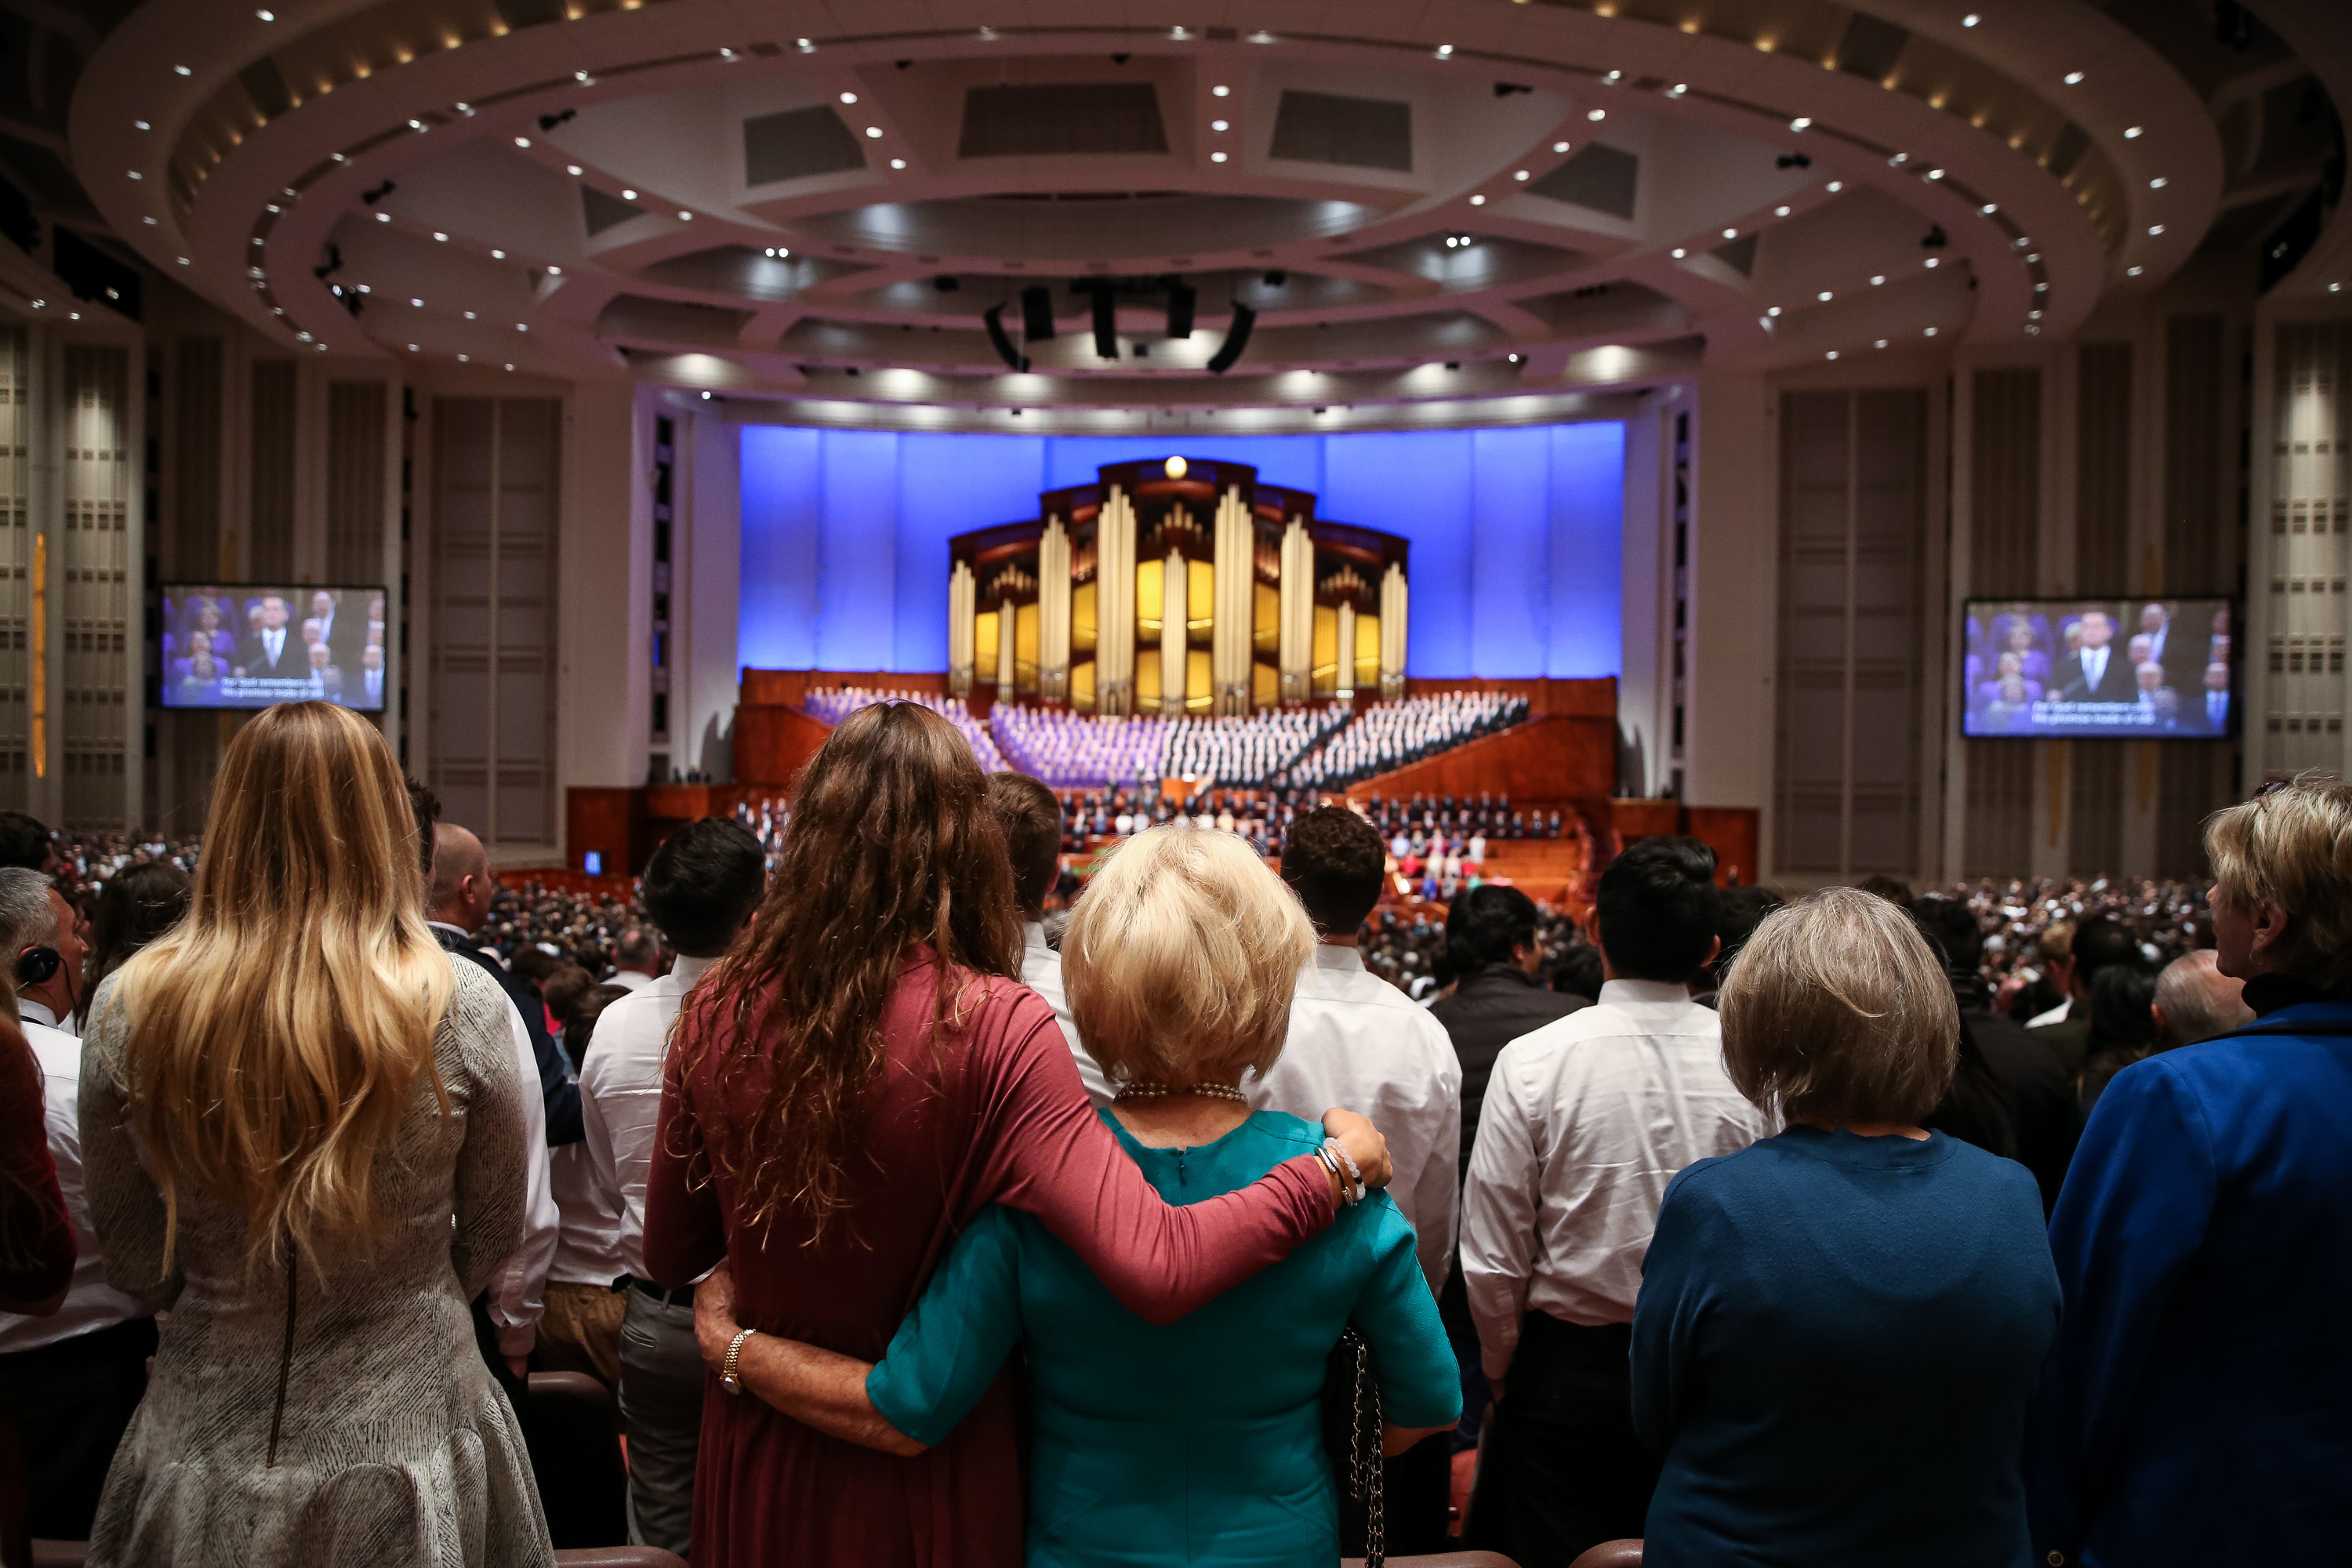 Conferencegoers rise in song during the Saturday morning session of the 188th Semiannual General Conference of The Church of Jesus Christ of Latter-day Saints in the Conference Center in Salt Lake City on Saturday, Oct. 6, 2018.